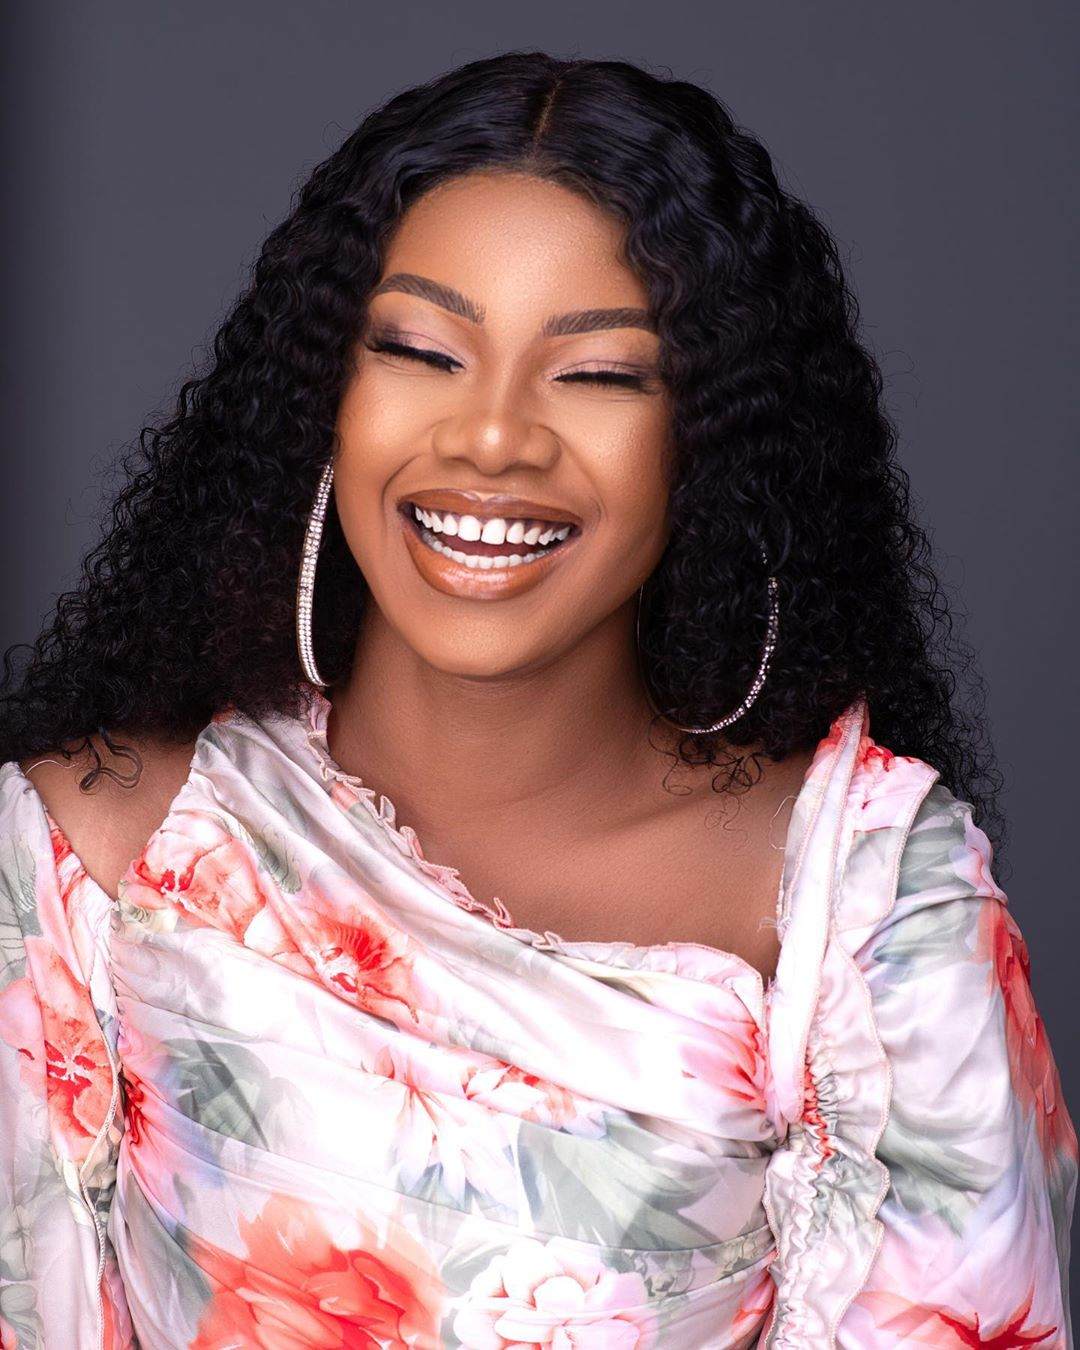 Tacha posts first video after Instagram exit - Talks about Starzzawards, her fans and more